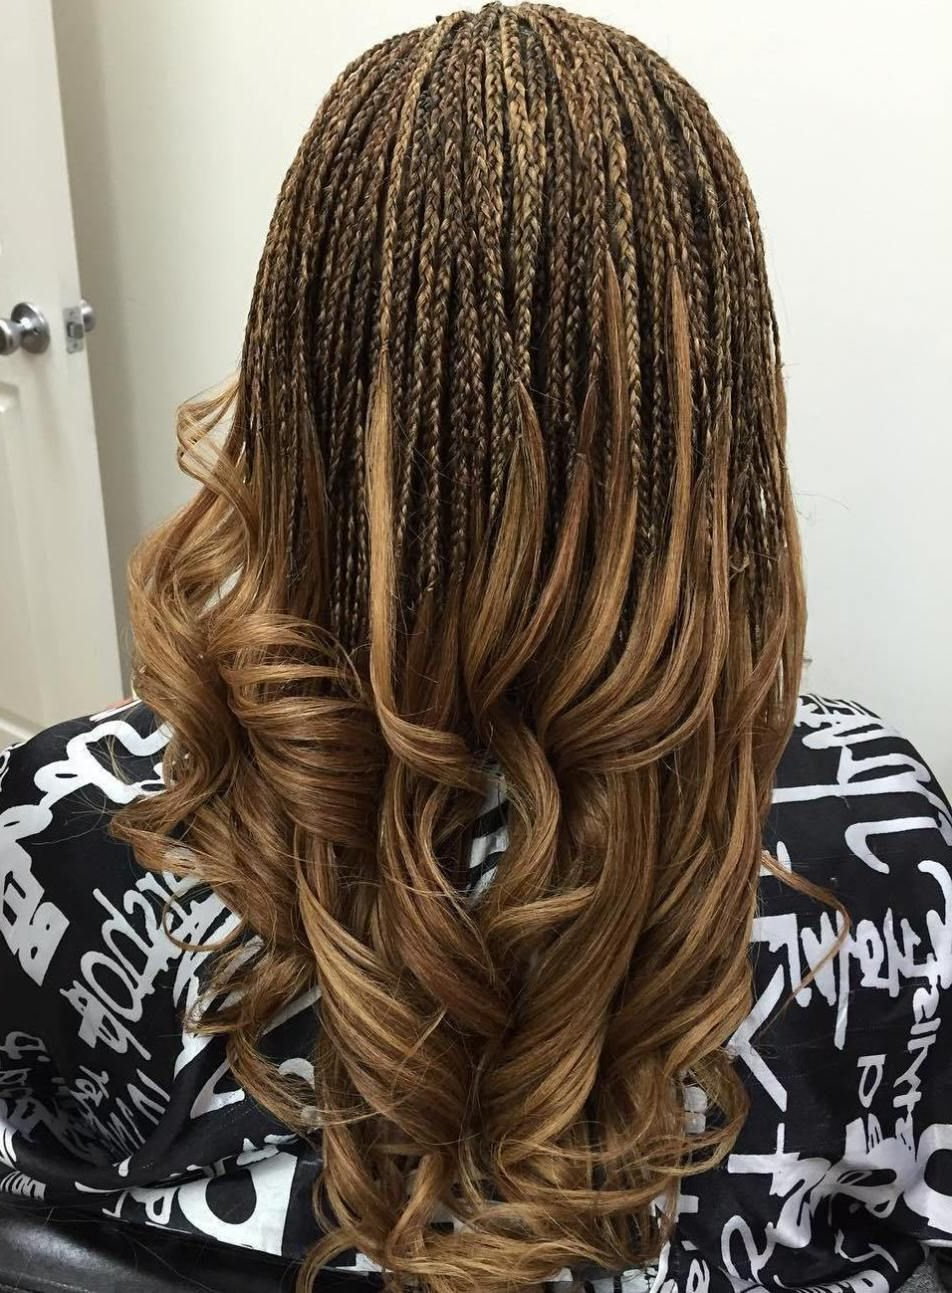 40 Ideas Of Micro Braids And Invisible Braids Hairstyles Throughout Widely Used Micro Braid Hairstyles With Curls (View 8 of 20)